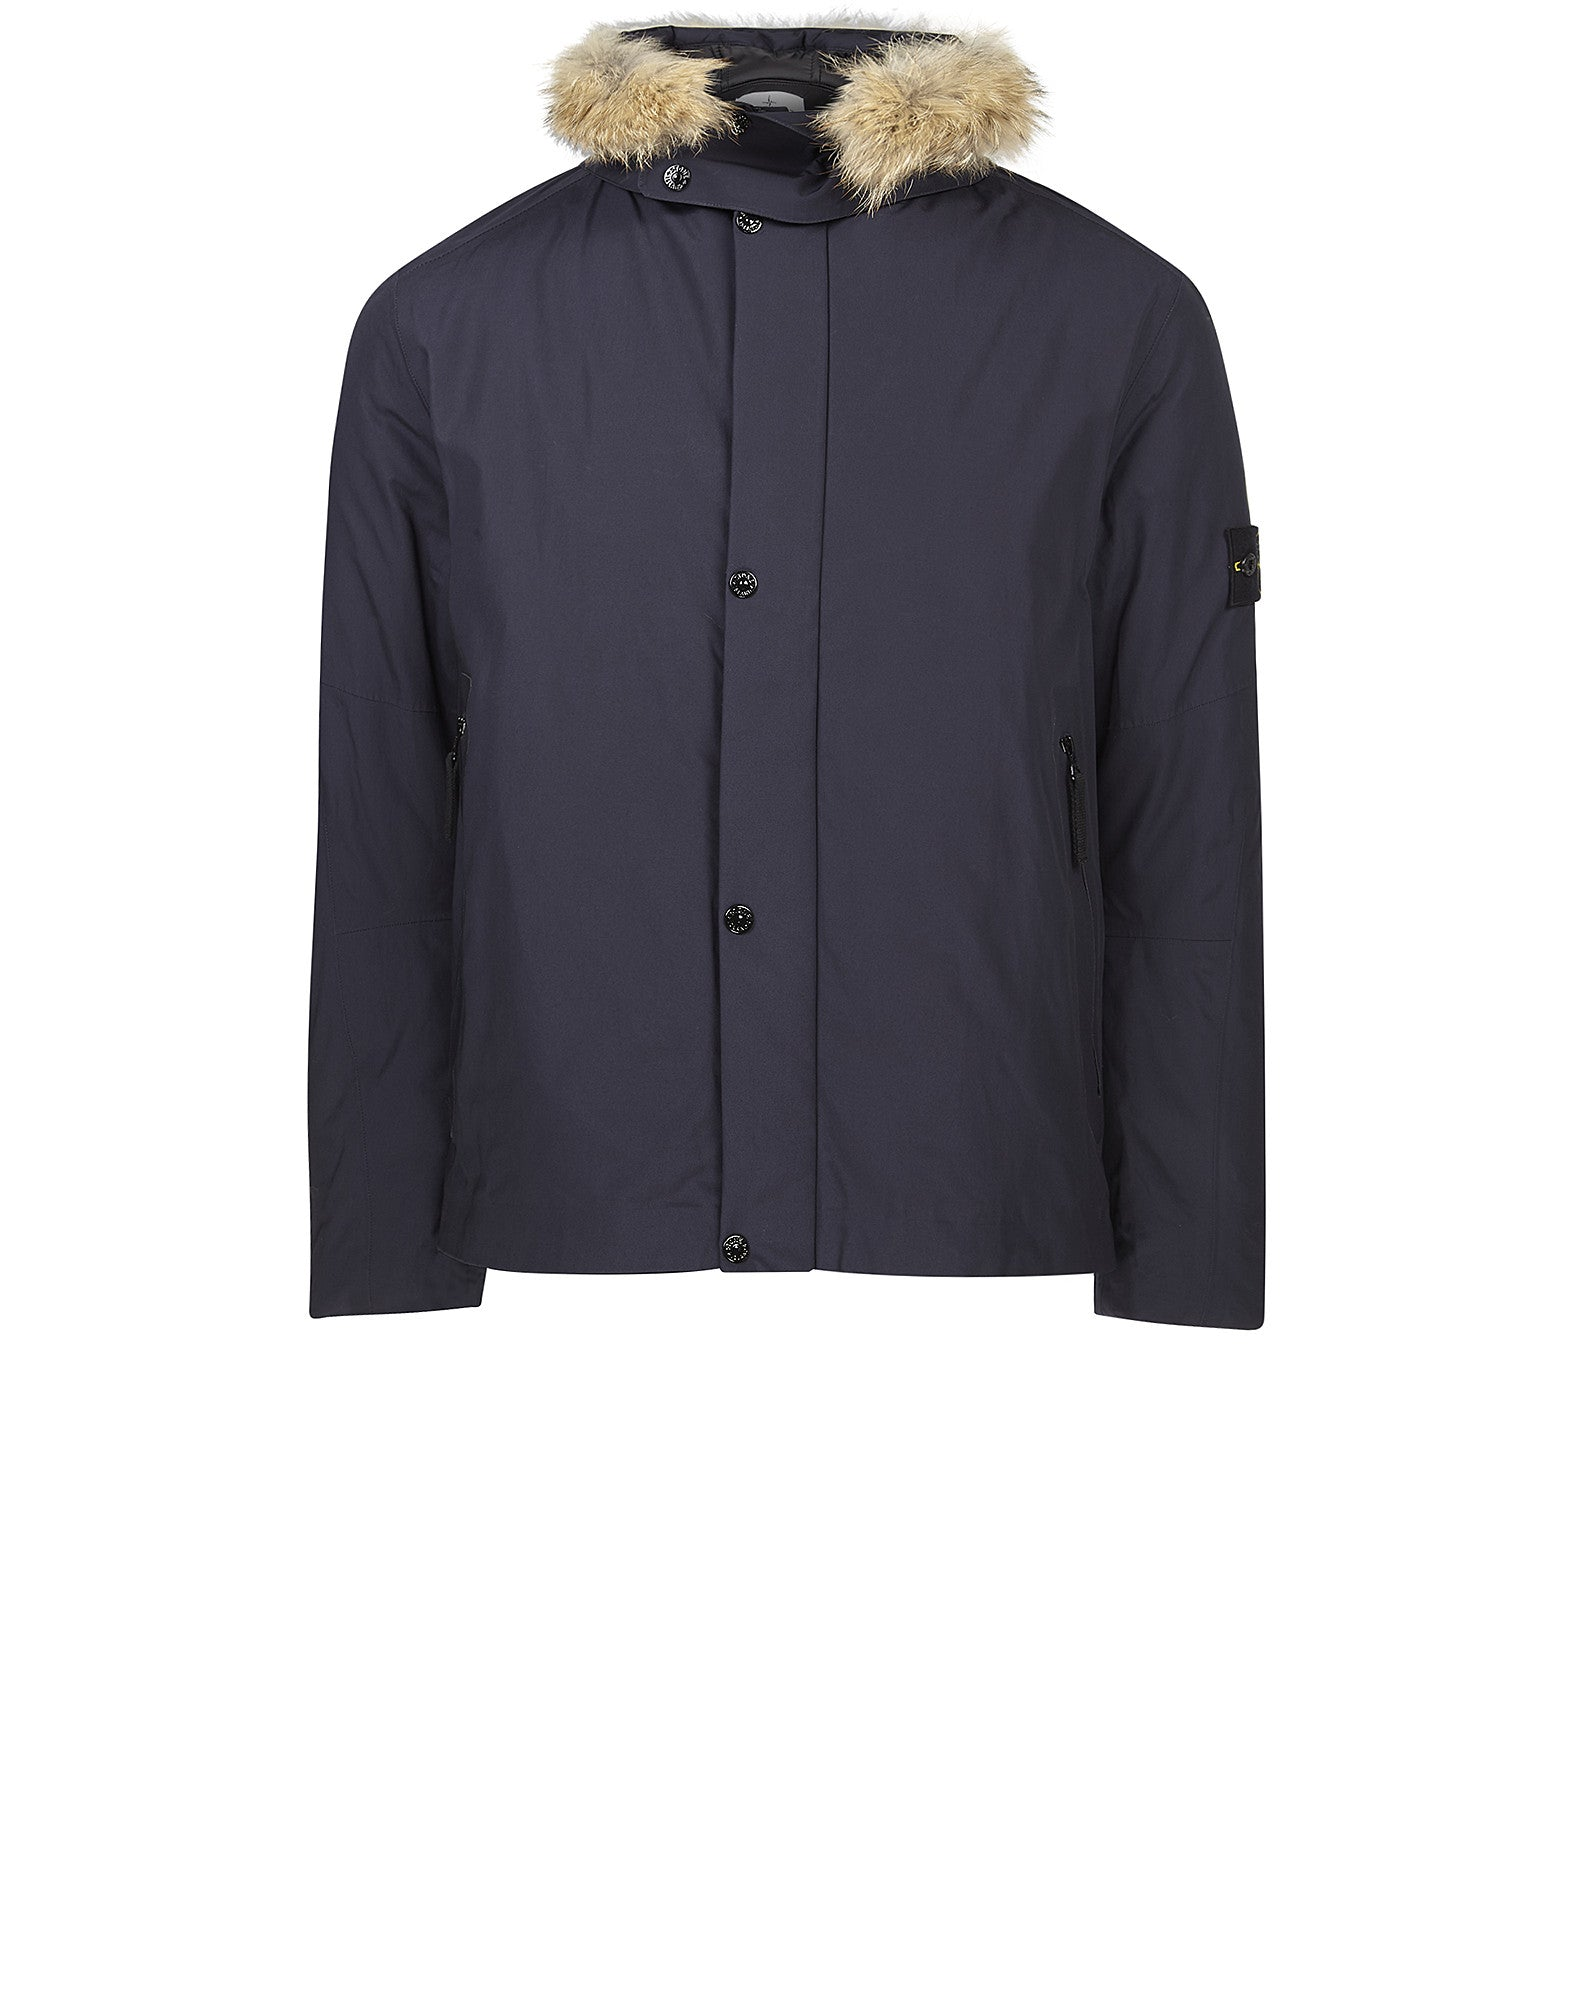 42025 WATER REPELLENT SUPIMA COTTON WITH PRIMALOFT® INSULATION TECHNOLOGY Jacket in Navy